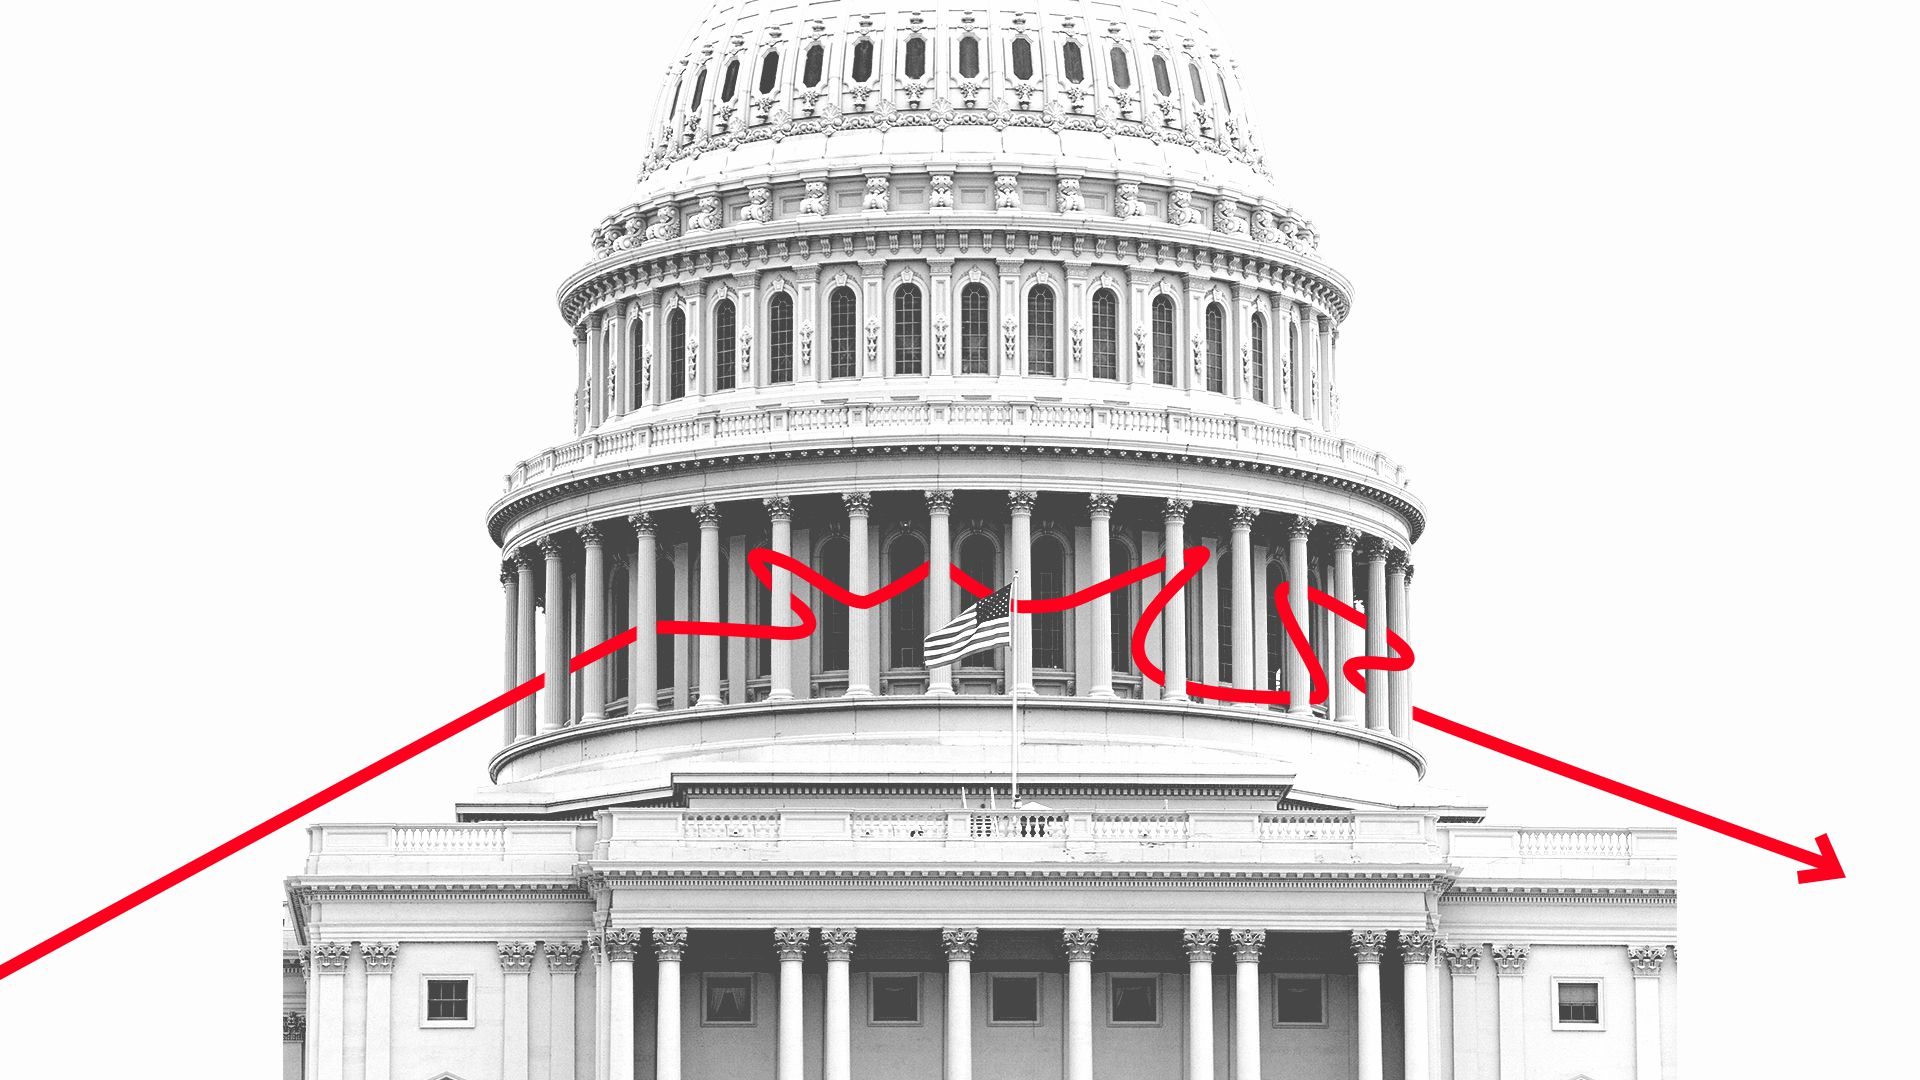 Illustration of trend line tangled in U.S. capital building